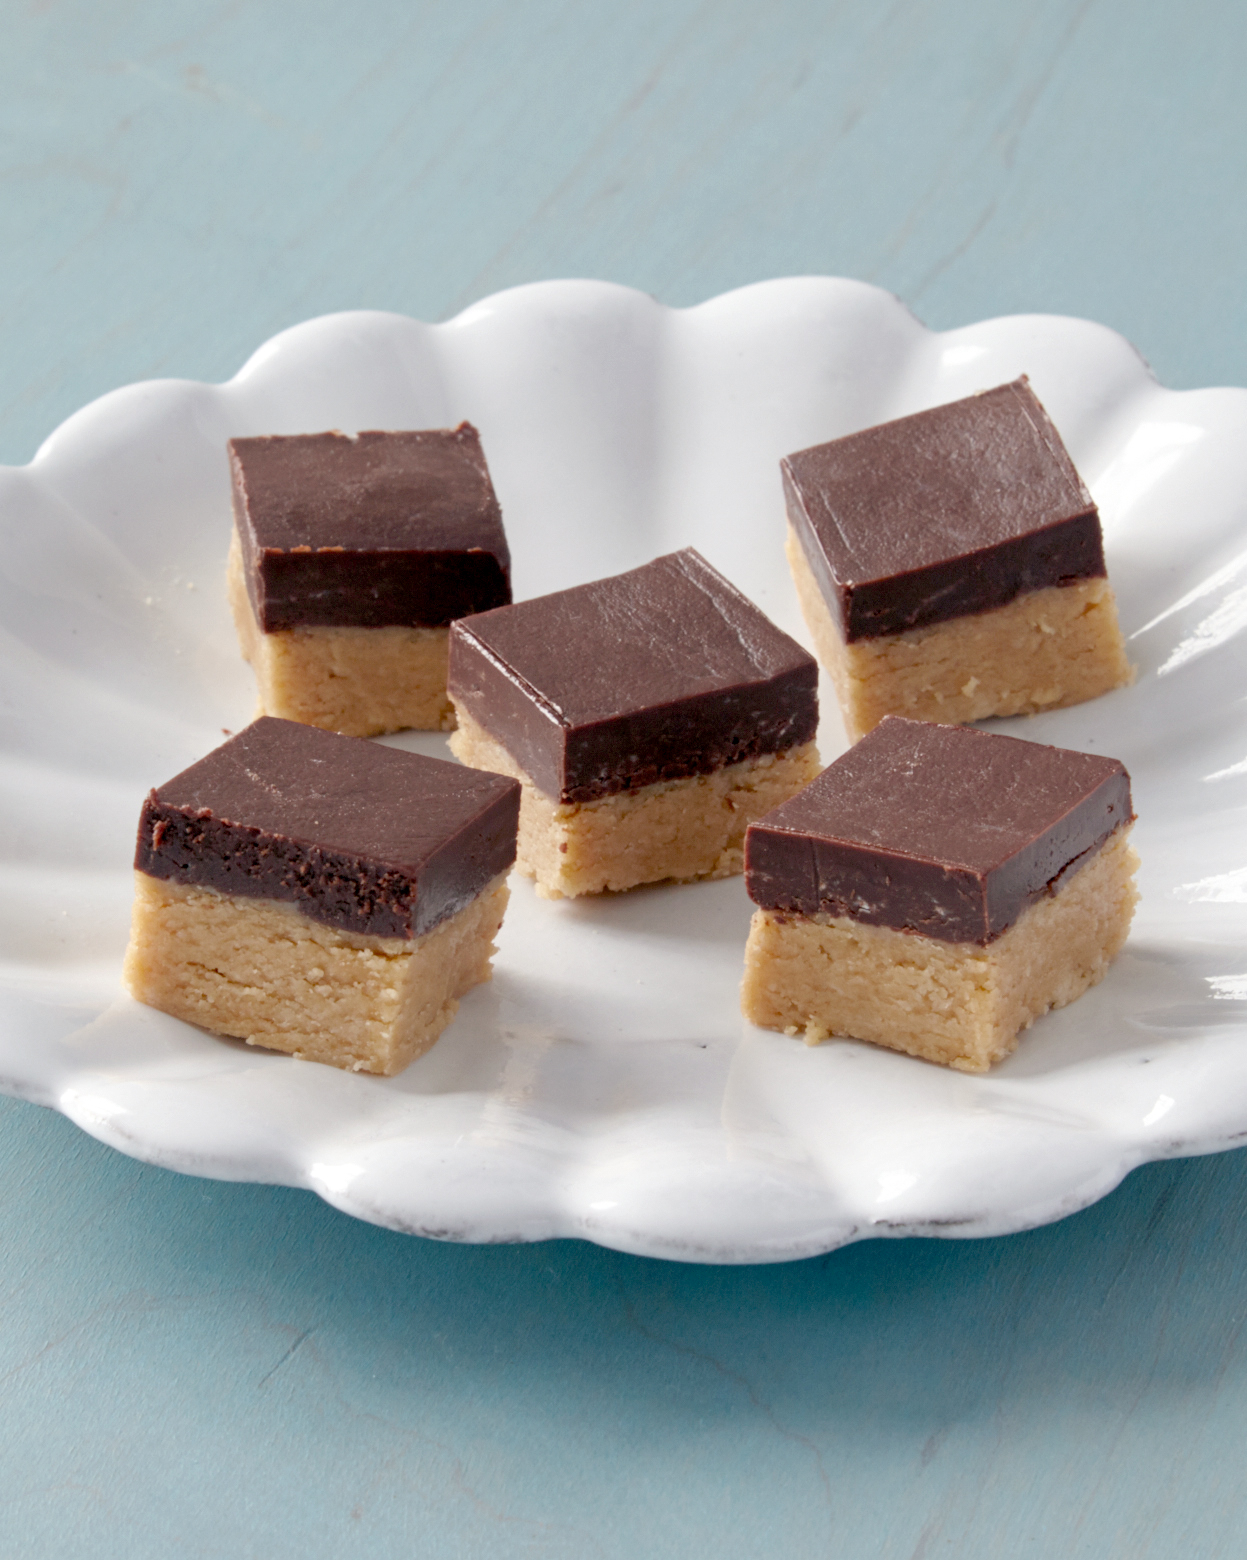 chocolate-peanut-butter-fudge-0539-d112420.jpg